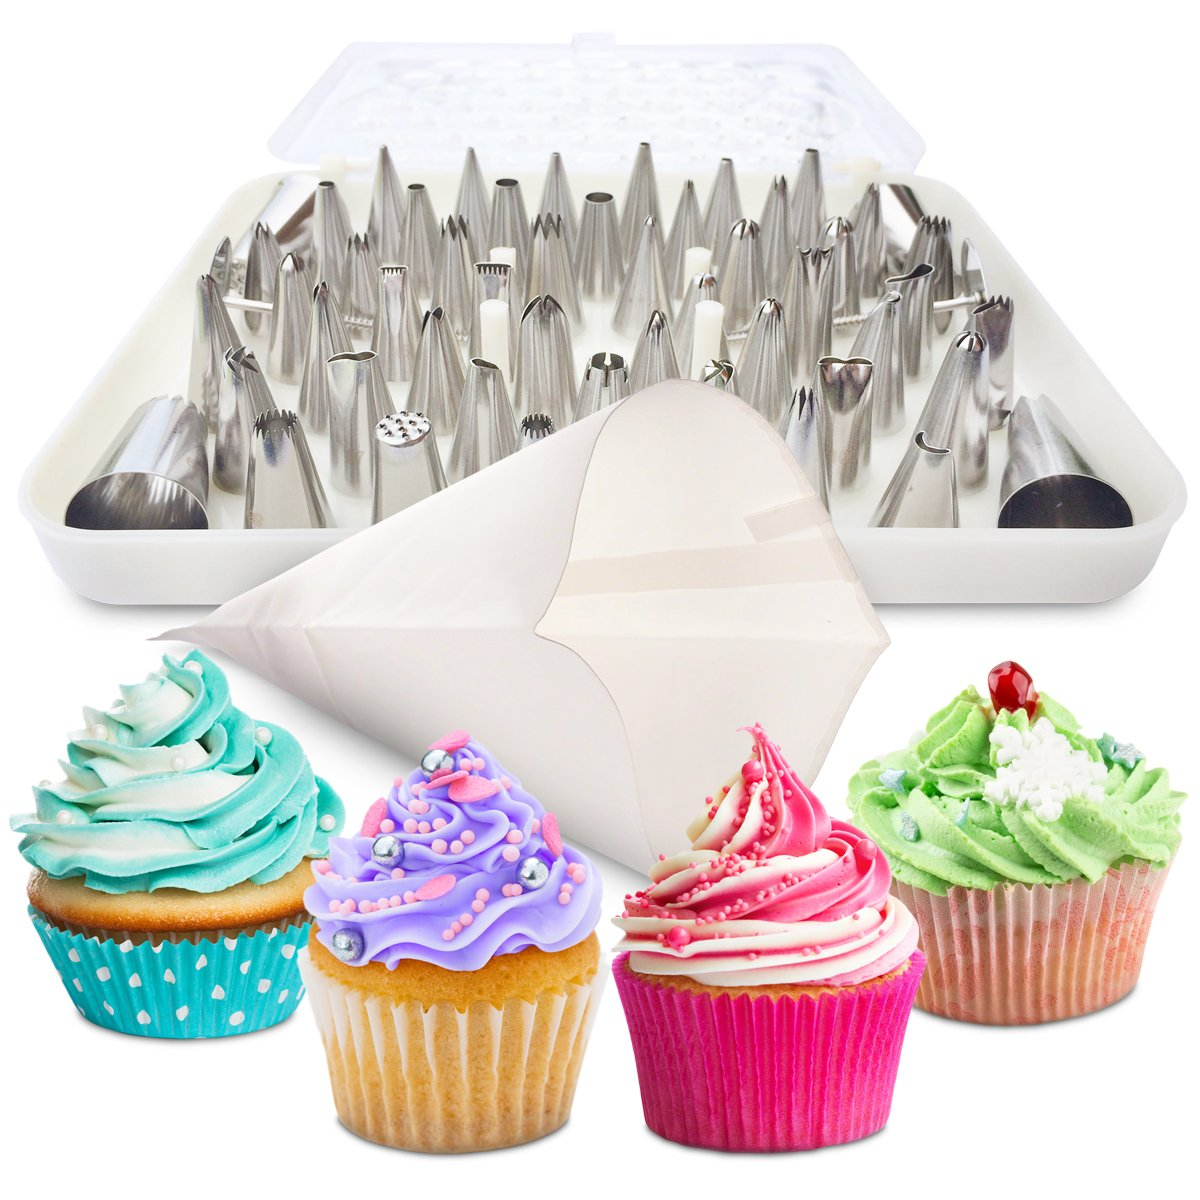 BakeLux Cake Decorating Tips Set - 56 Piece Professional Kit With 18-Inch Reusable Cotton Pastry Bag For Icing Piping, 2 Flower Nails, Coupler, Storage Box, Duyas Reposteria, Baking Tools Supplies COMIN16JU044119